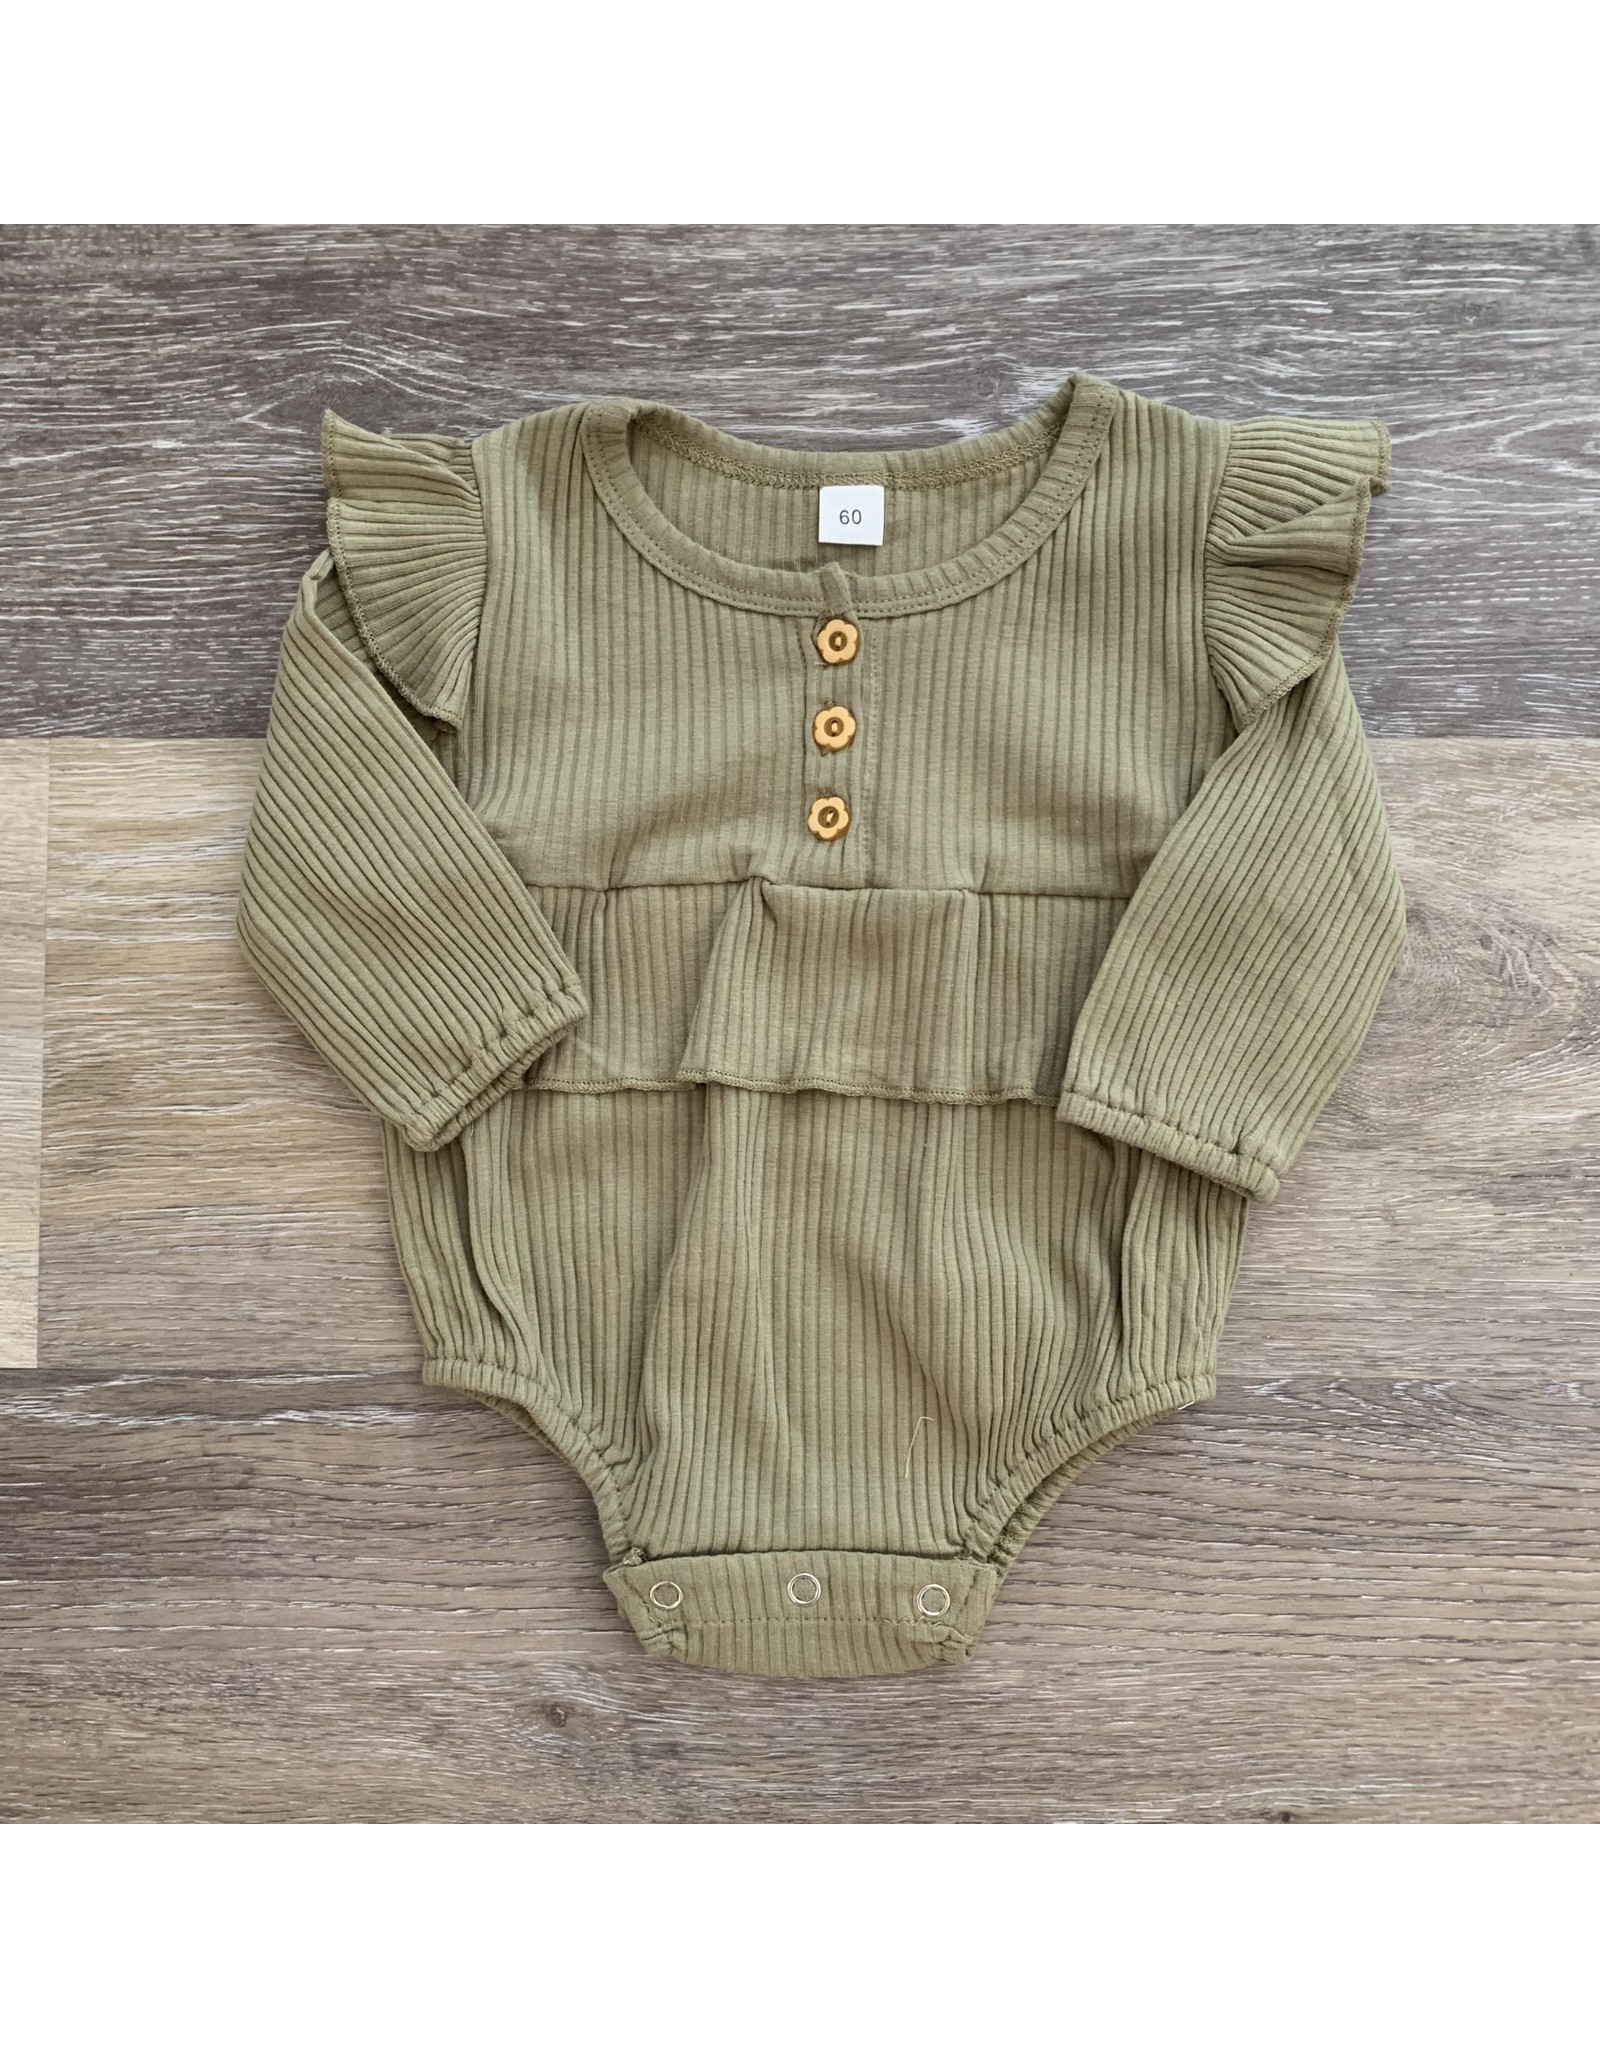 loved by Jade Presley loved by jade presley- Bella Ribbed Button Romper: Olive